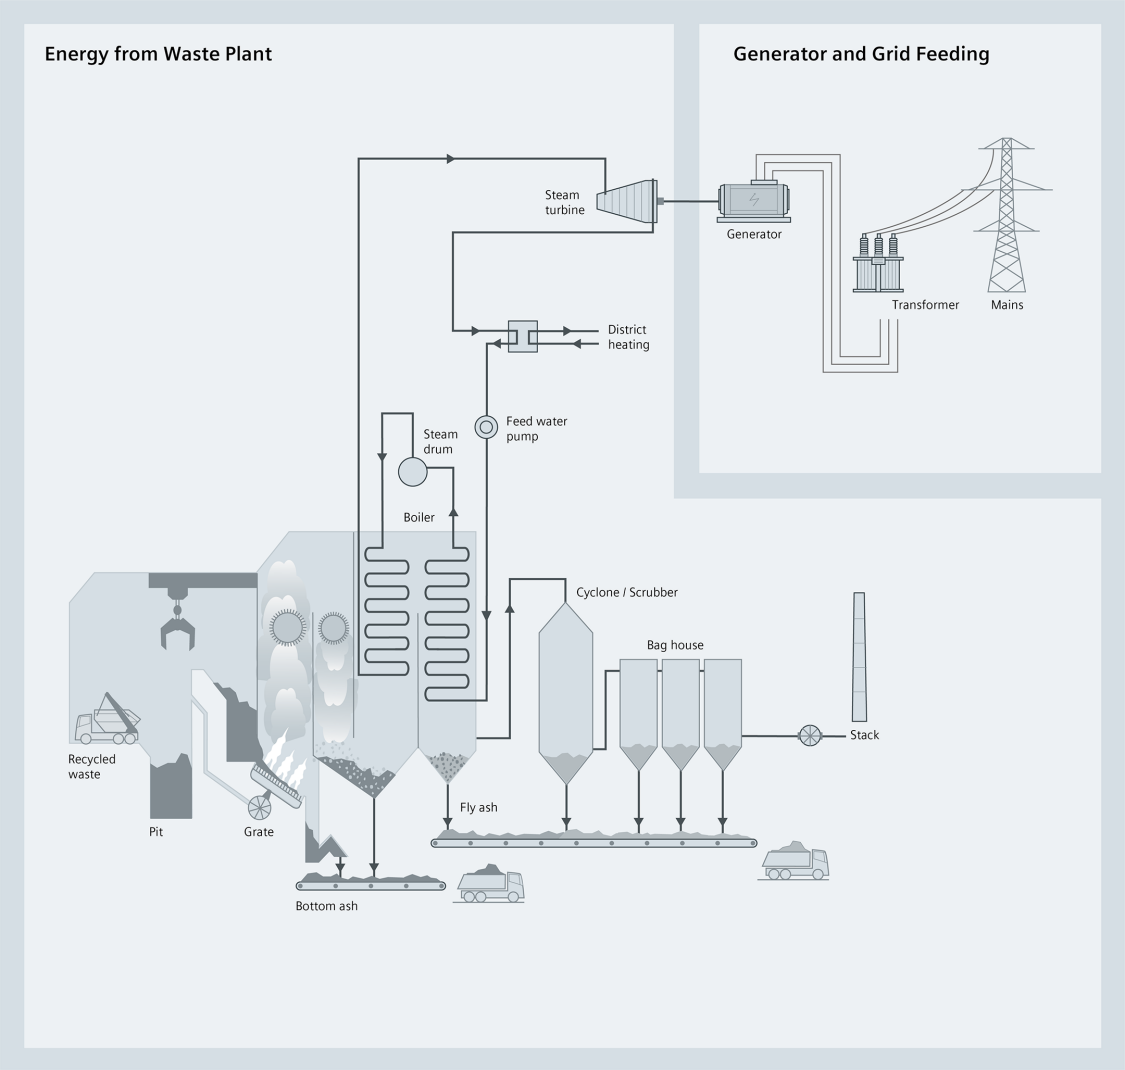 A schematic illustration of processes in biomass power plants